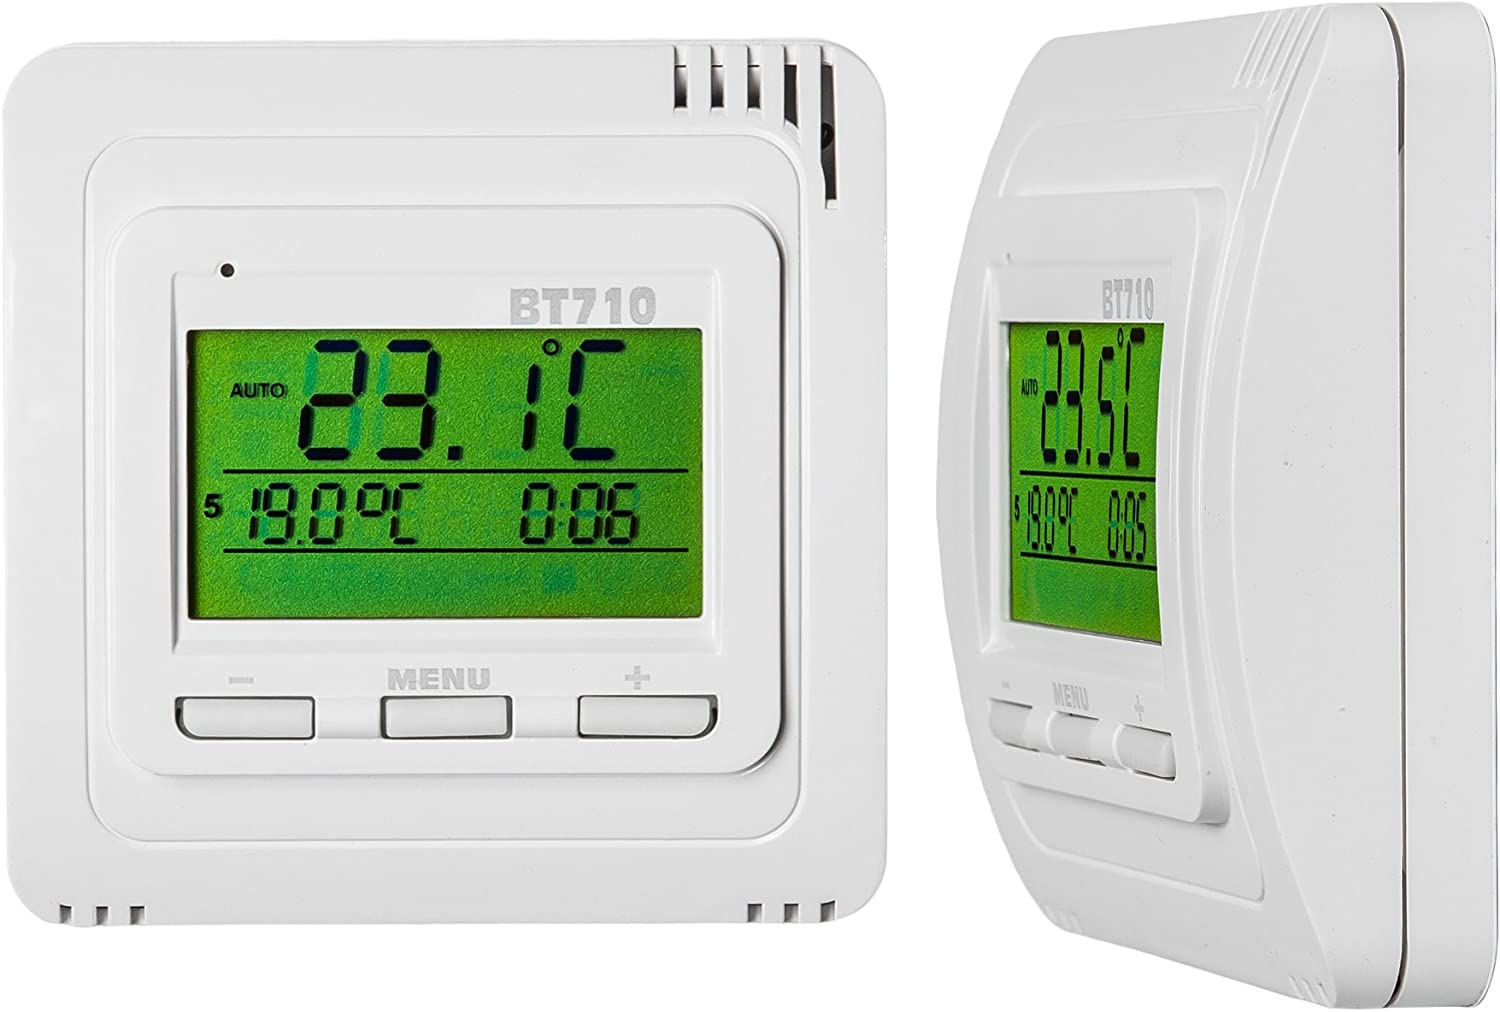 Type 3 | No. 401343 tectake Thermostat programmable dambiance Digital Chauffage climatisation electronique